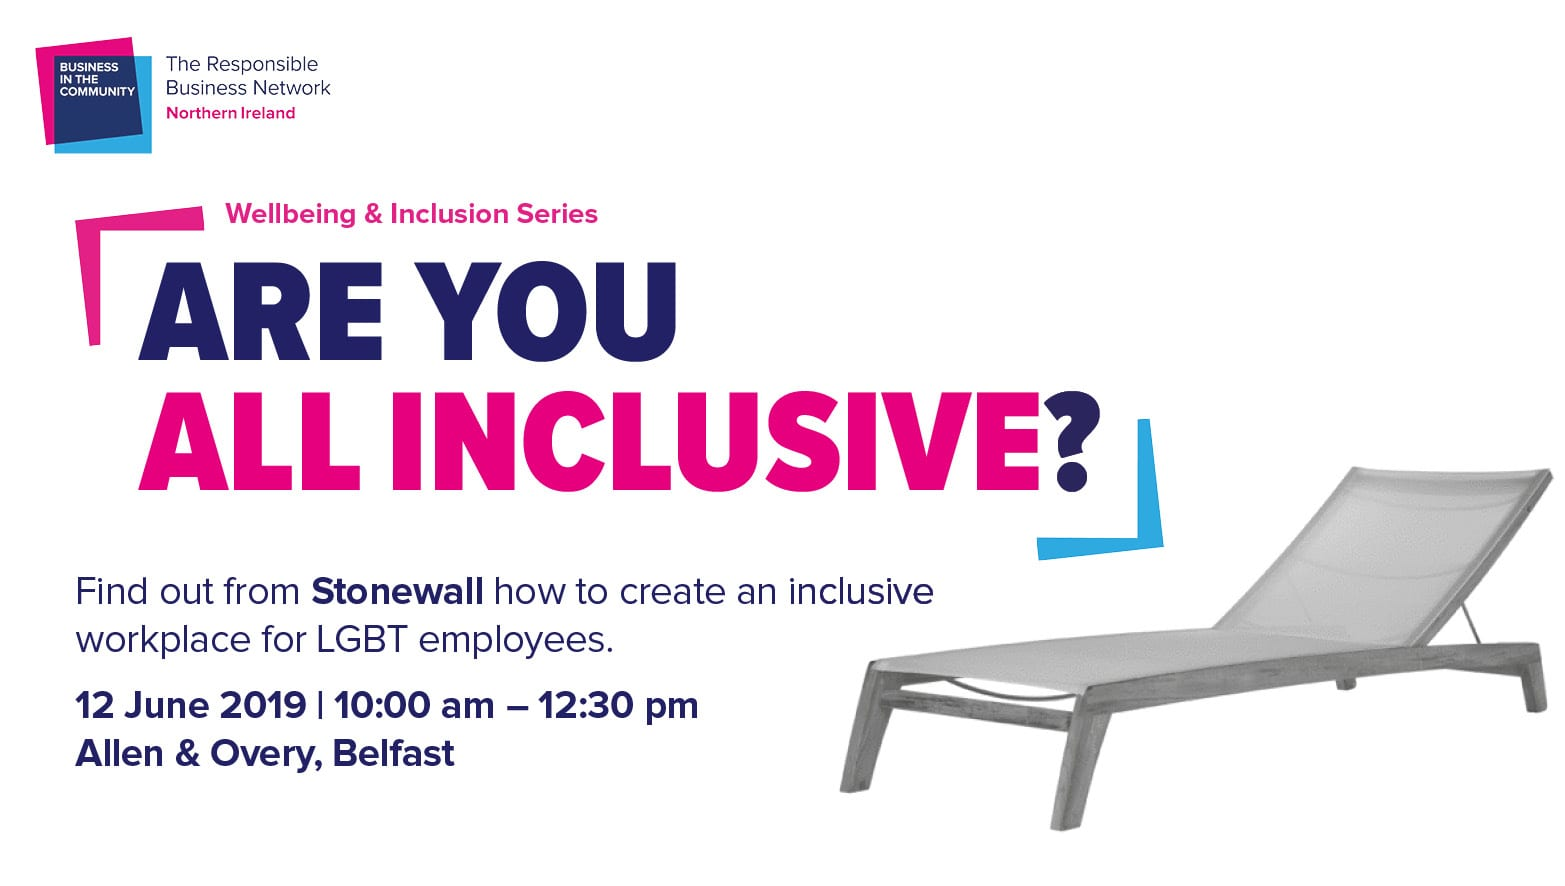 Business in the Community's Wellbeing and Inclusion series